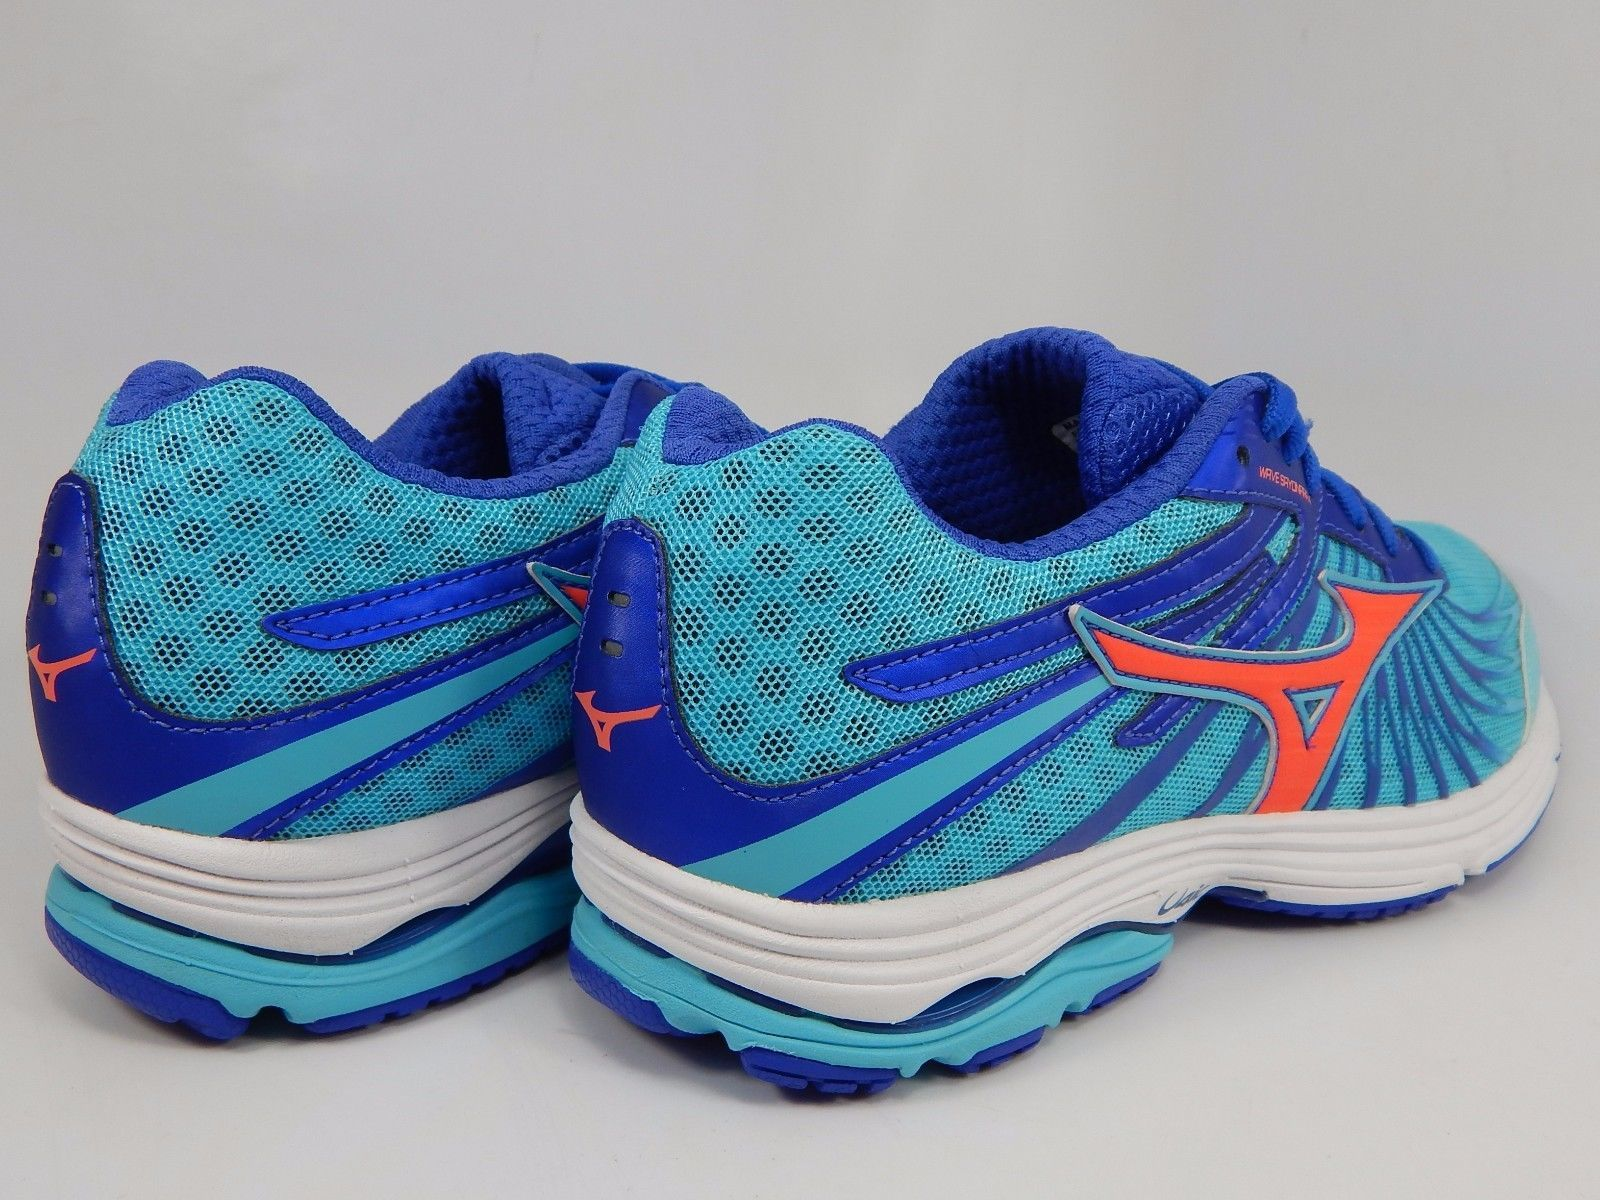 Mizuno Wave Sayonara 4 Women's Running Shoes Size US 8 M (B) EU 38.5 Blue Pink